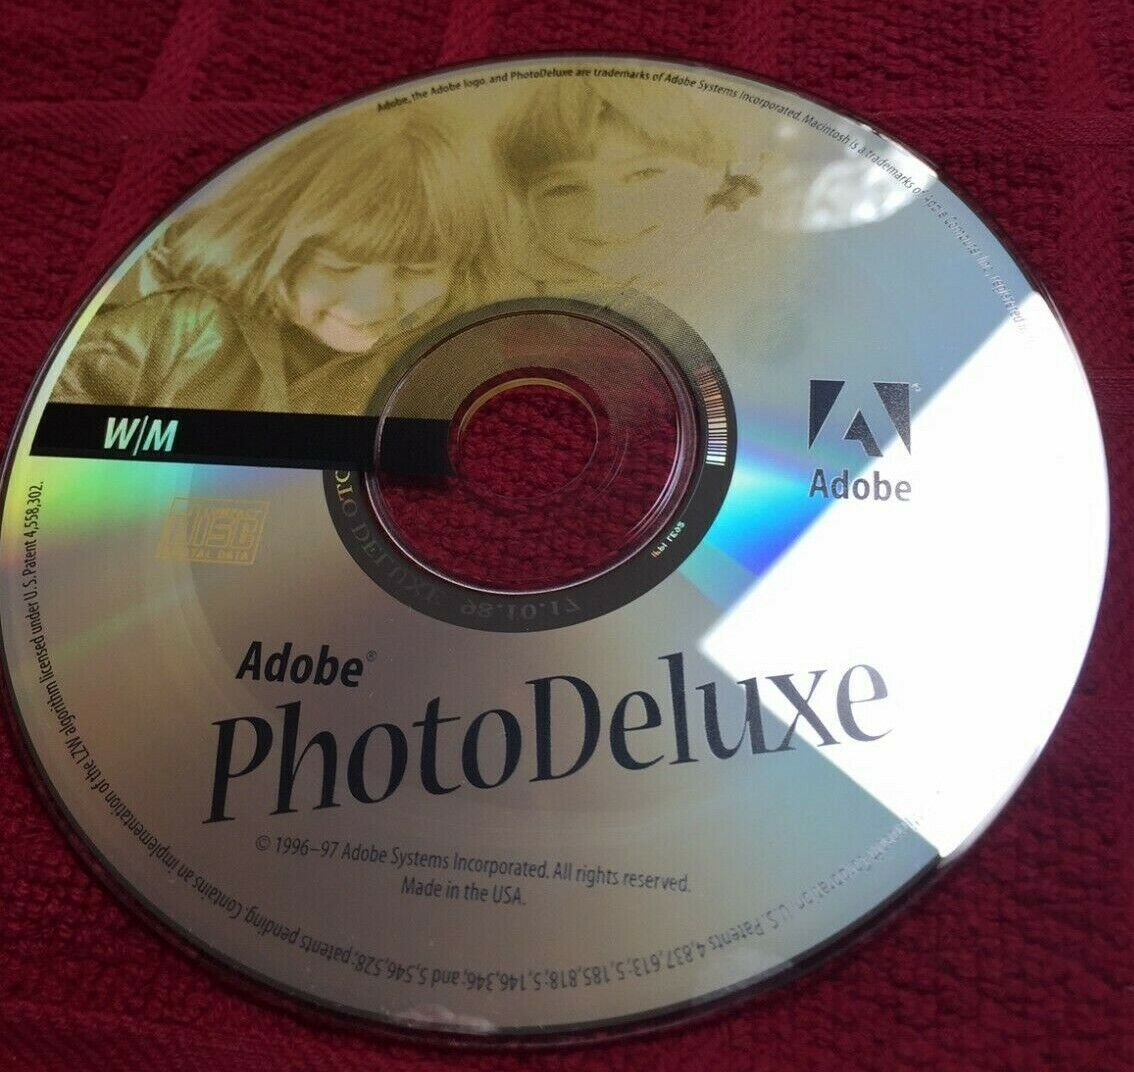 Adobe Photo Deluxe v2.0 Windows - Macintosh 1996 / 97 CD Software Disc Only